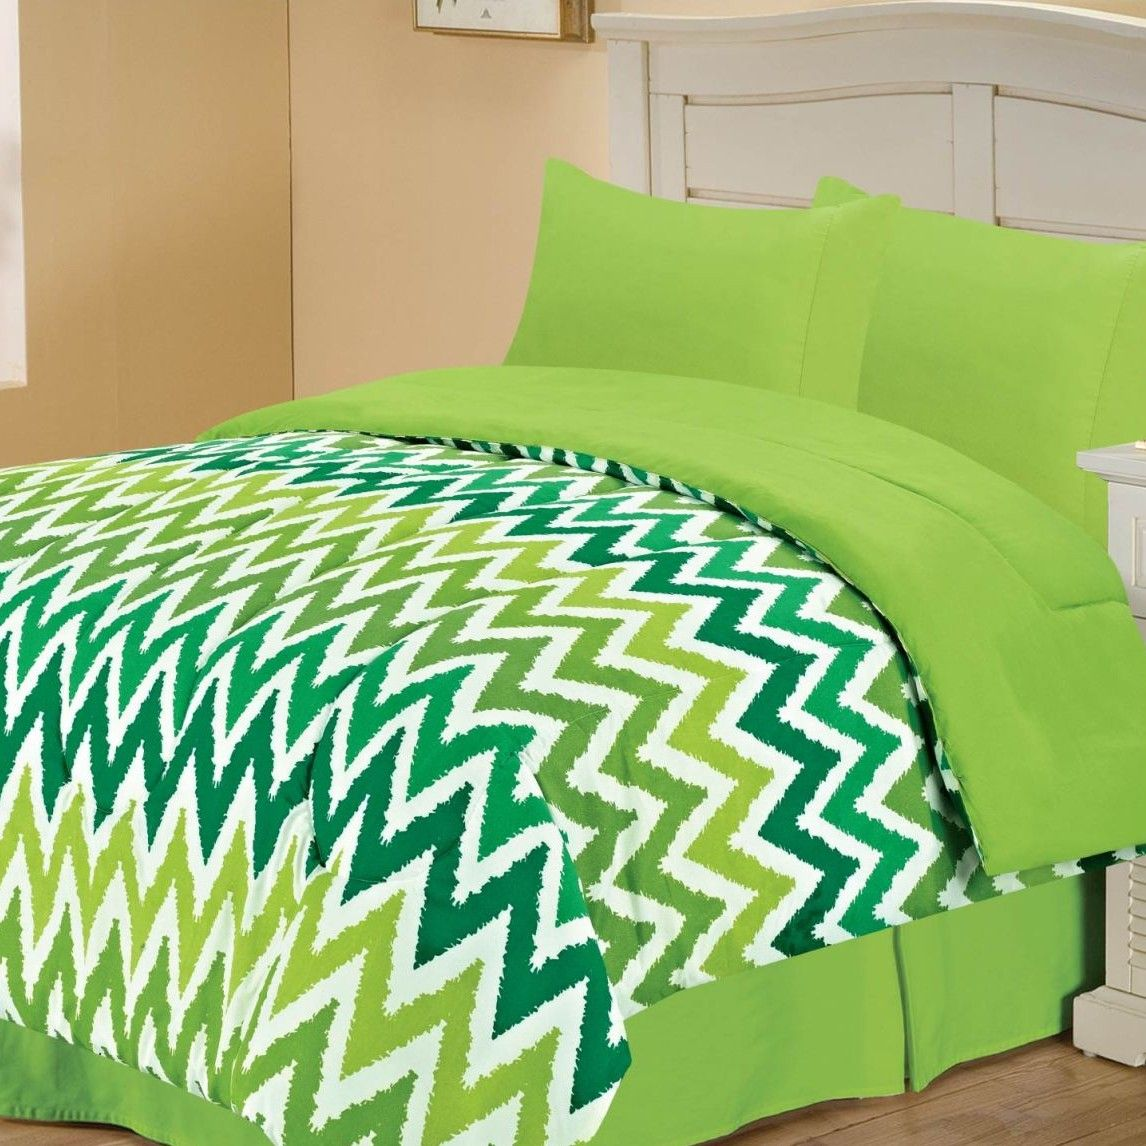 Blue and green bedding for teens - Green Chevron Bedding Set